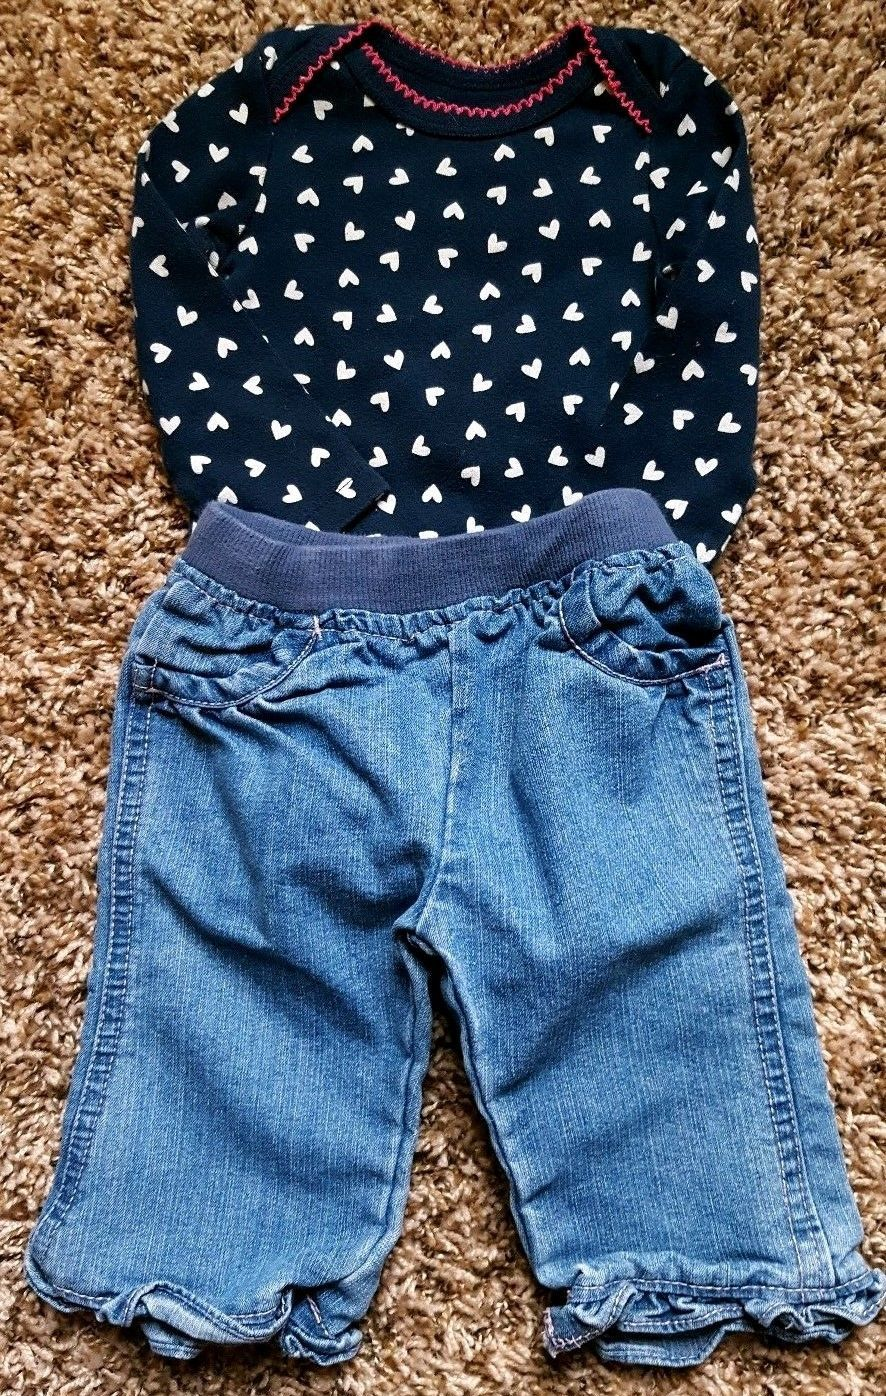 Girl's Size 6 M 3-6 Months 2 Piece Navy Heart L/S Old Navy Top & Circo Jeans